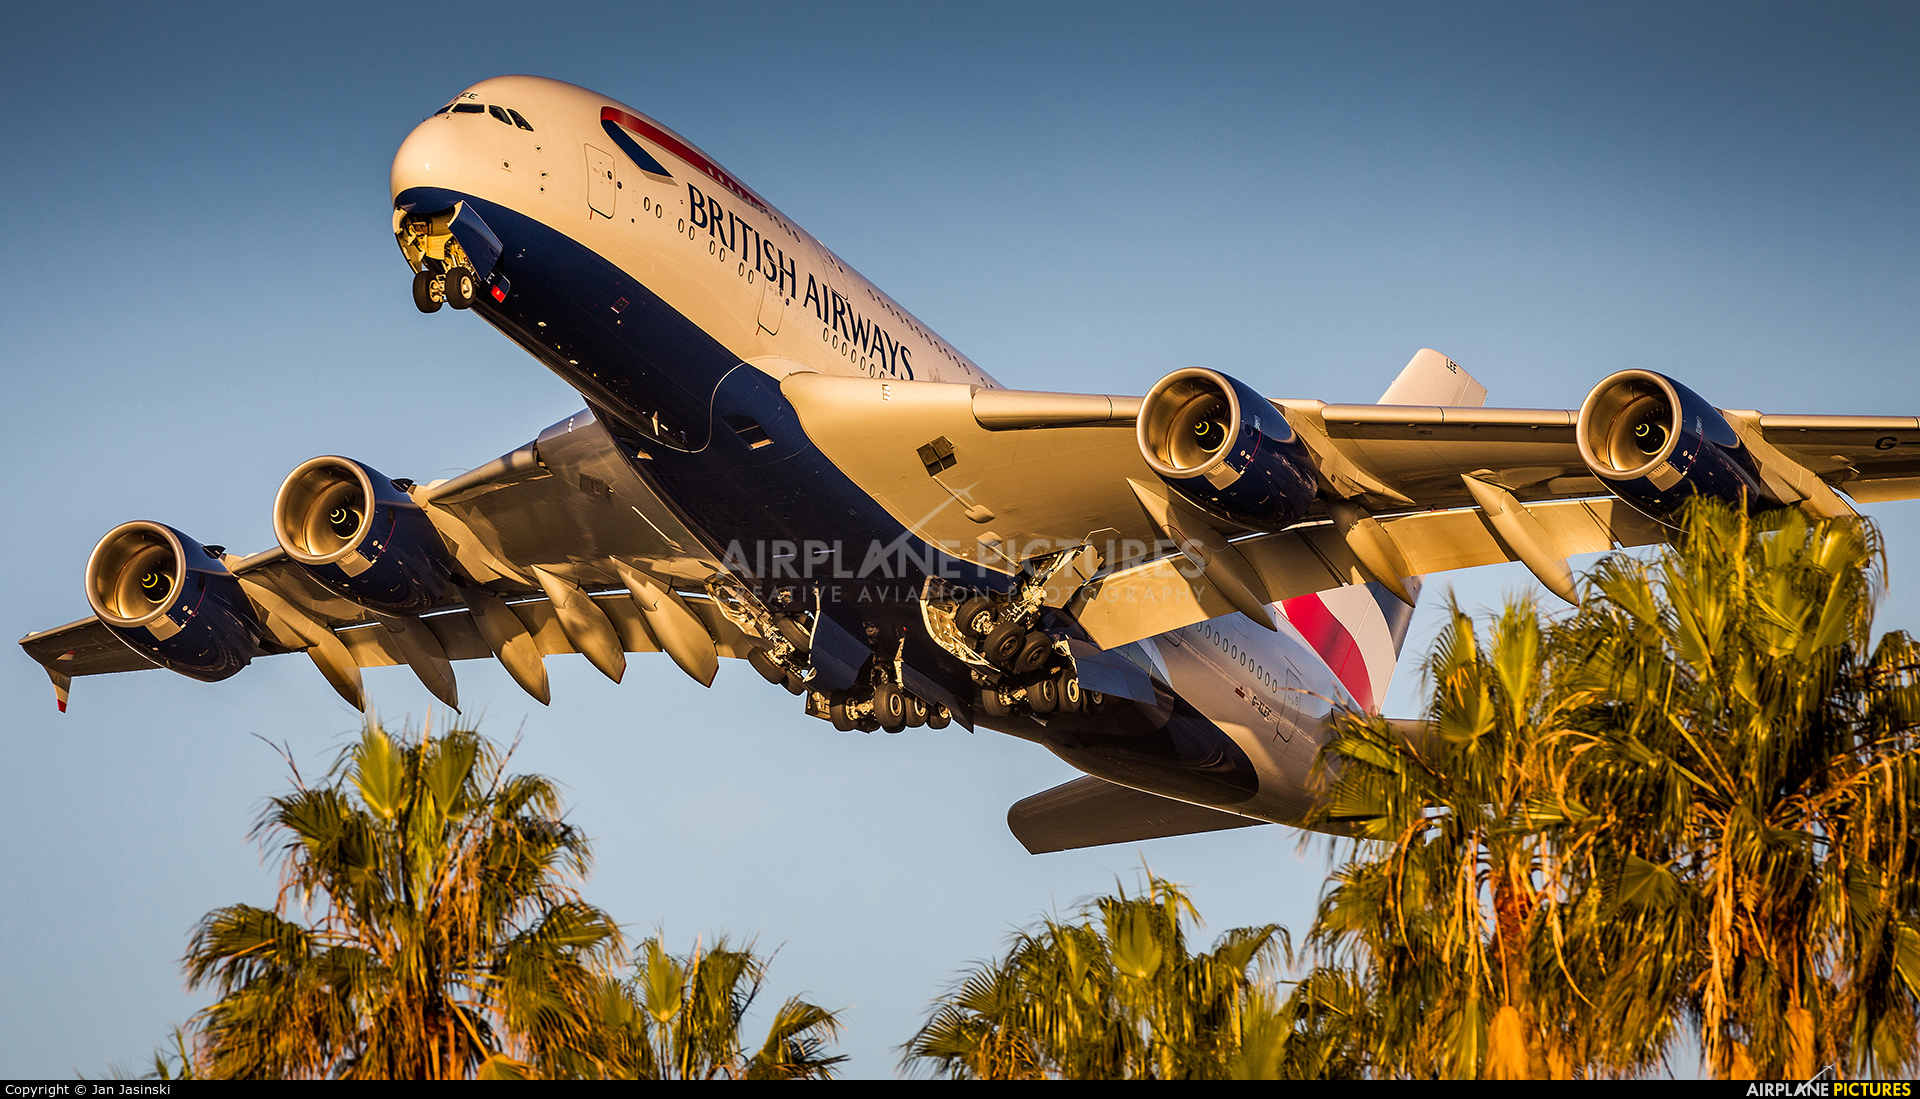 British Airways G-XLEE aircraft at Los Angeles Intl